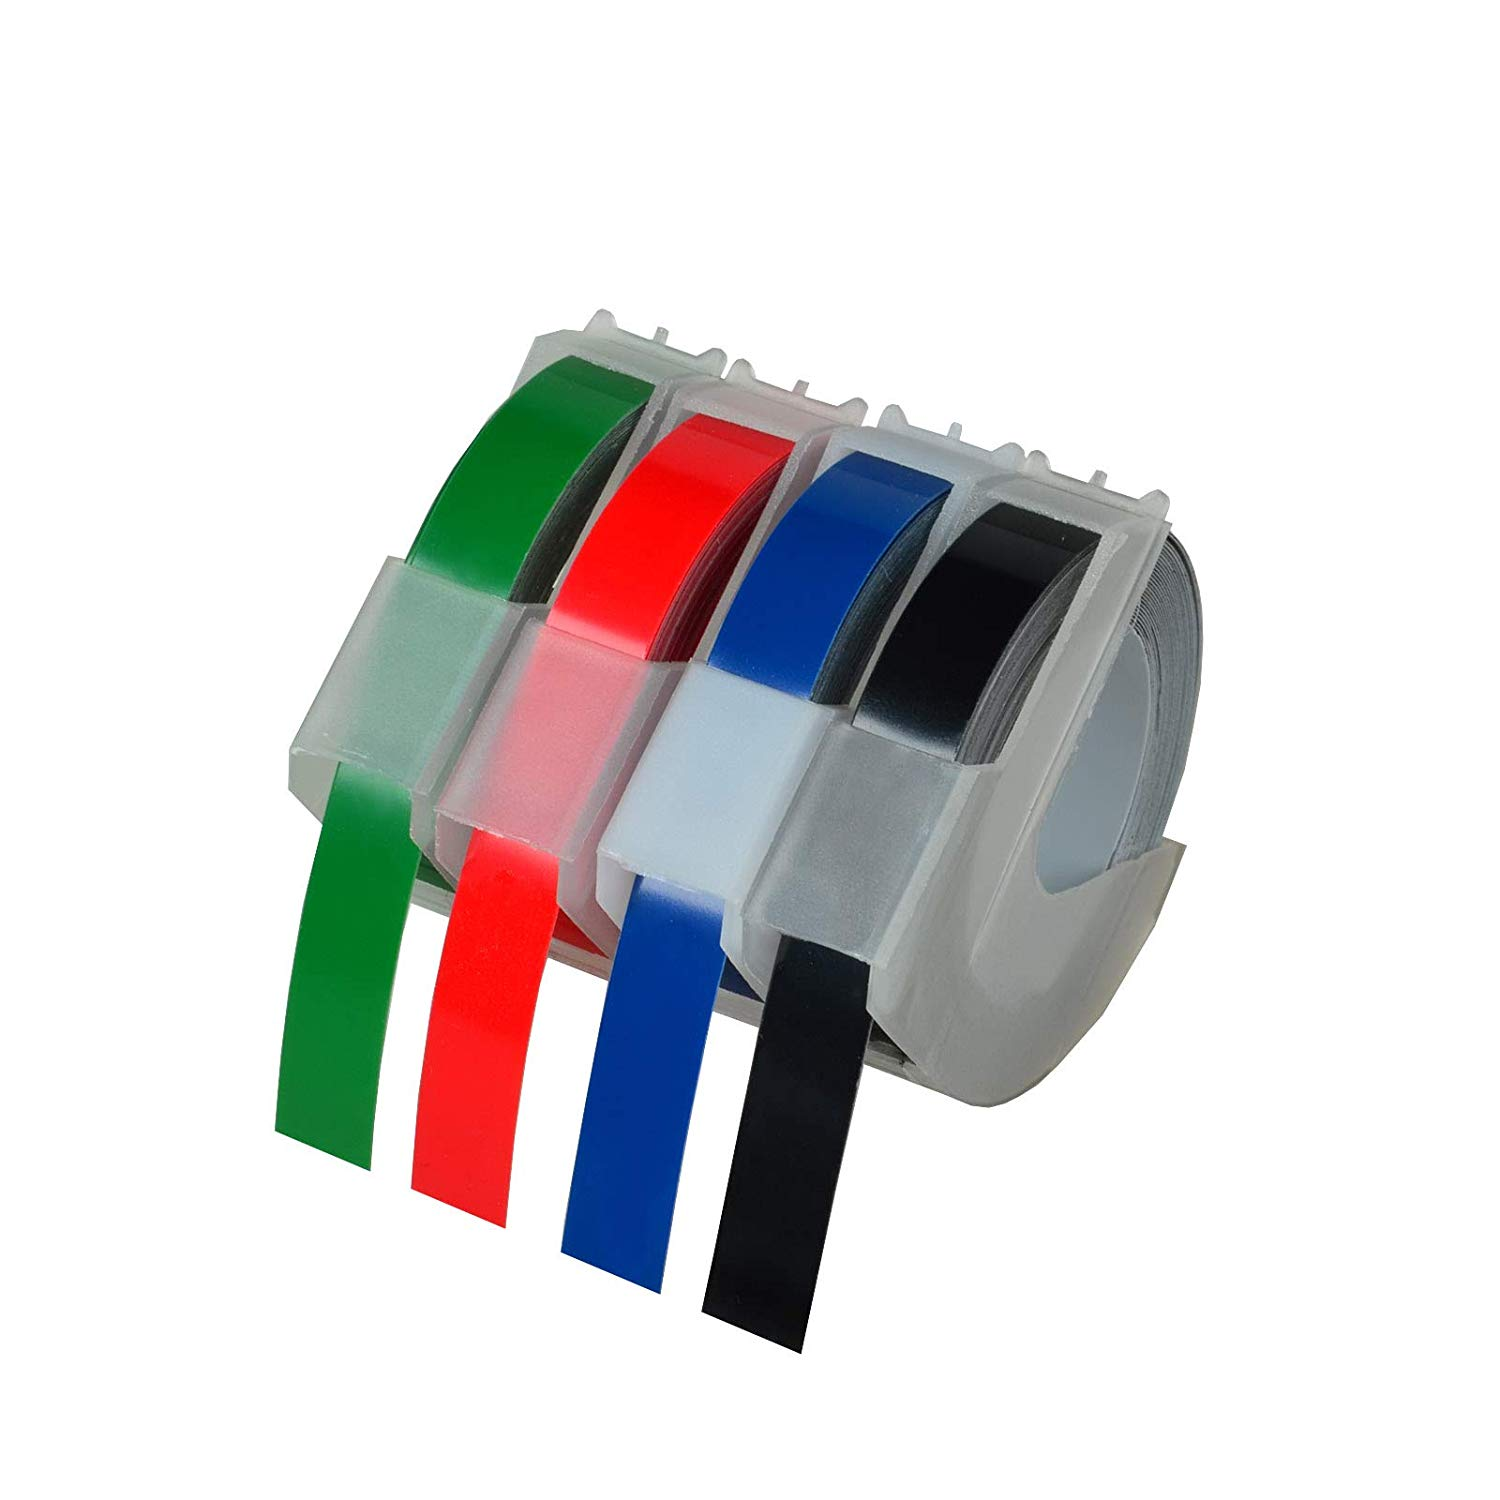 99a80b83d9f967 KCYMTONER 4 roll Pack Replace DYMO 3D Plastic Embossing Labels Tape for  Embossing White on Red Green Blue Black 3 8   x 9.8  520102 520103 520106  520109 for ...